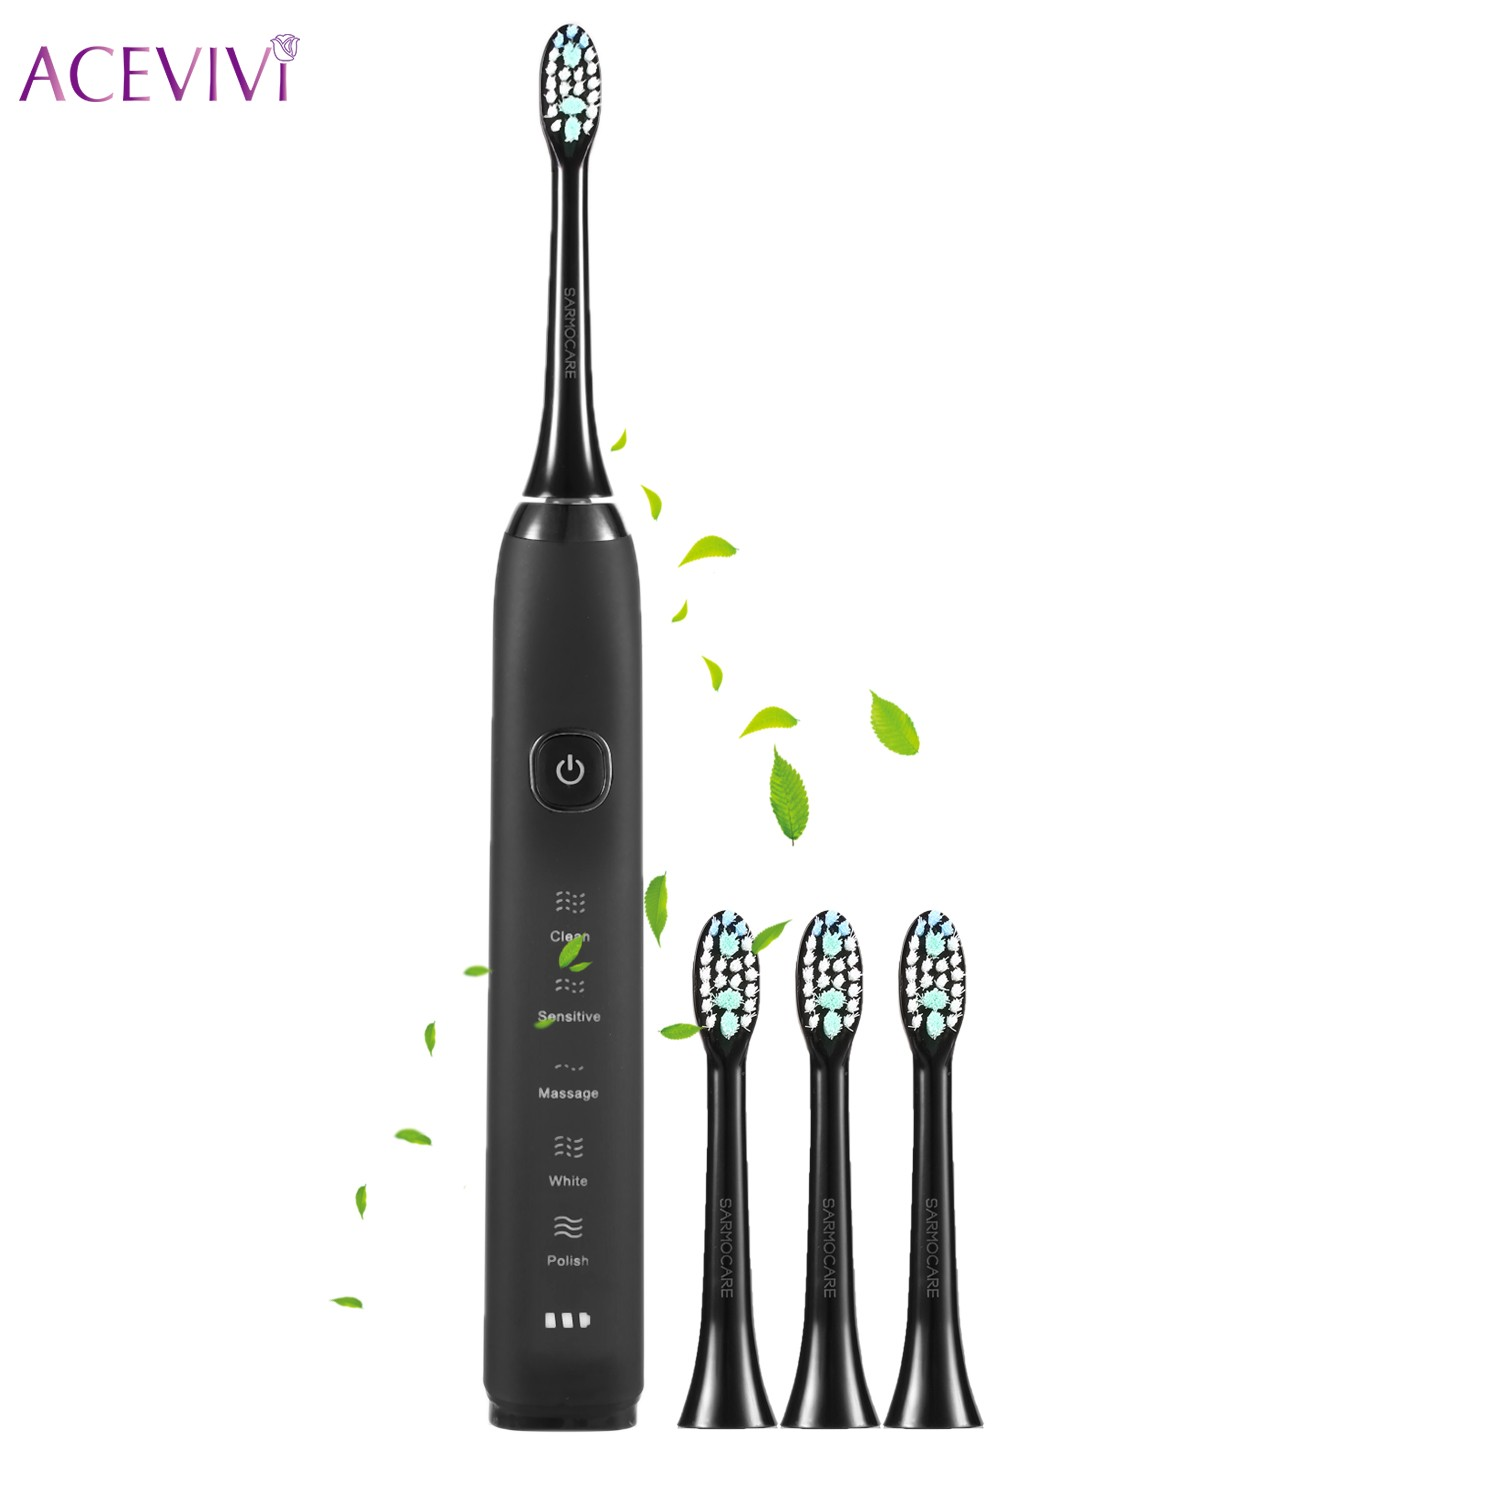 ACEVIVI Ultrasonic Sonic Electric Toothbrush USB Charge Rechargeable Tooth Brushes With 3 Heads Timer Brush Oral Hygiene Health 2pcs philips sonicare replacement e series electric toothbrush head with cap